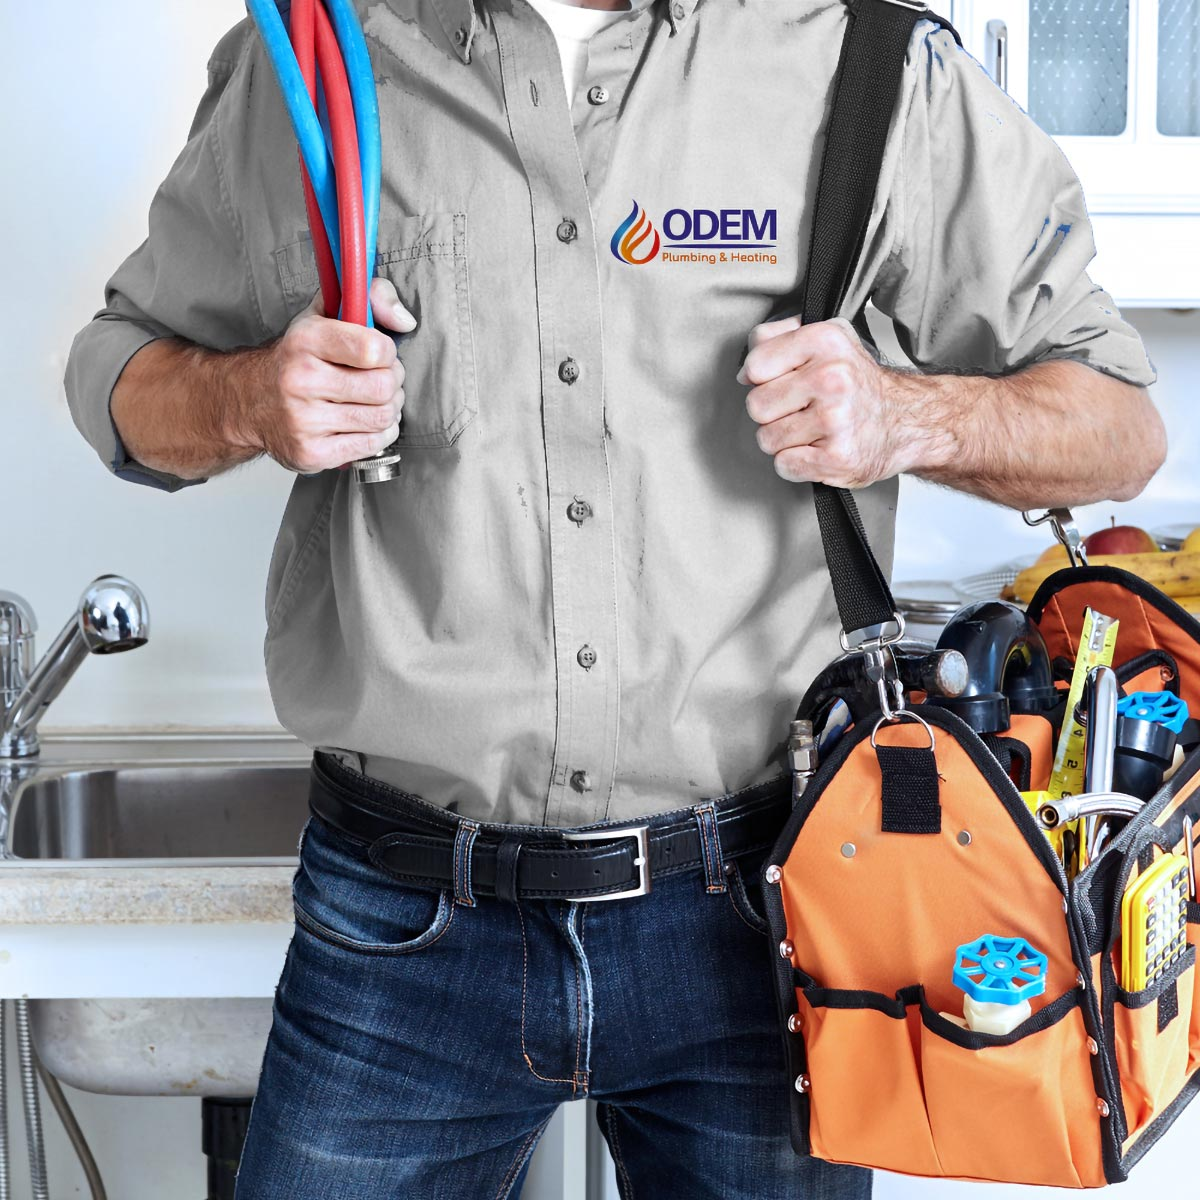 ODEM Plumbing and Heating